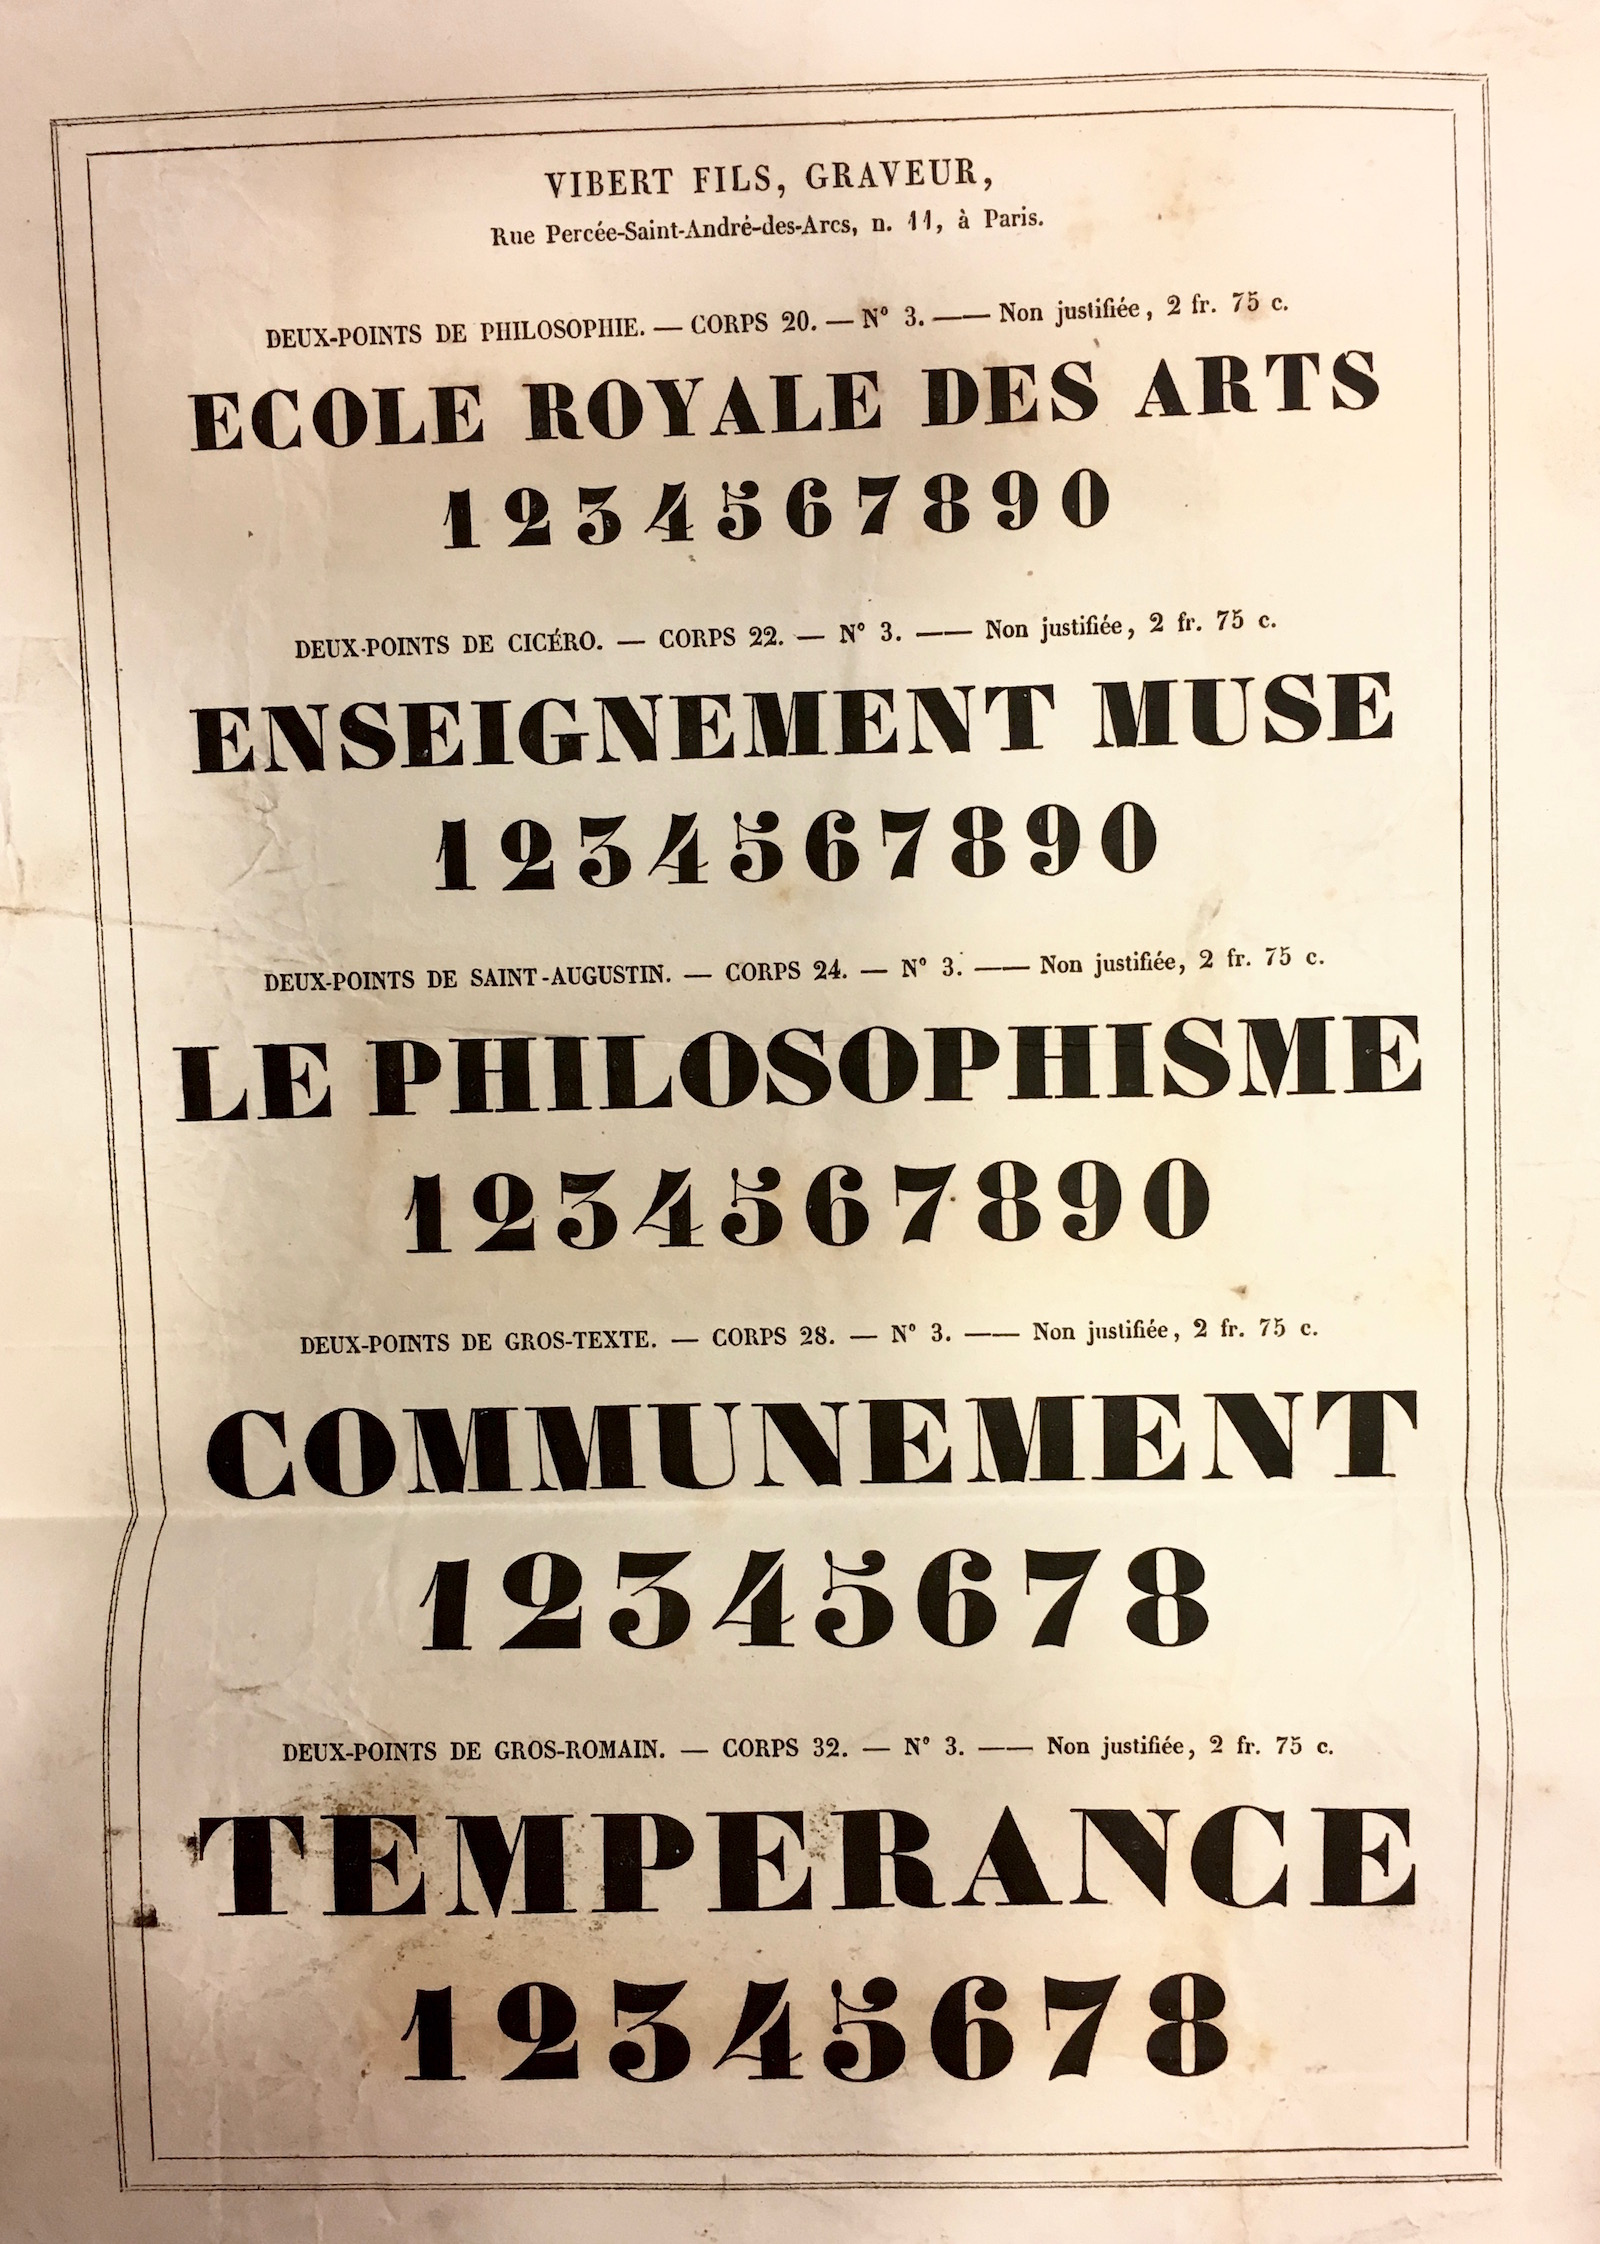 Ambroise Pro by Jean Francois Porchez: Michel Vibert typefaces